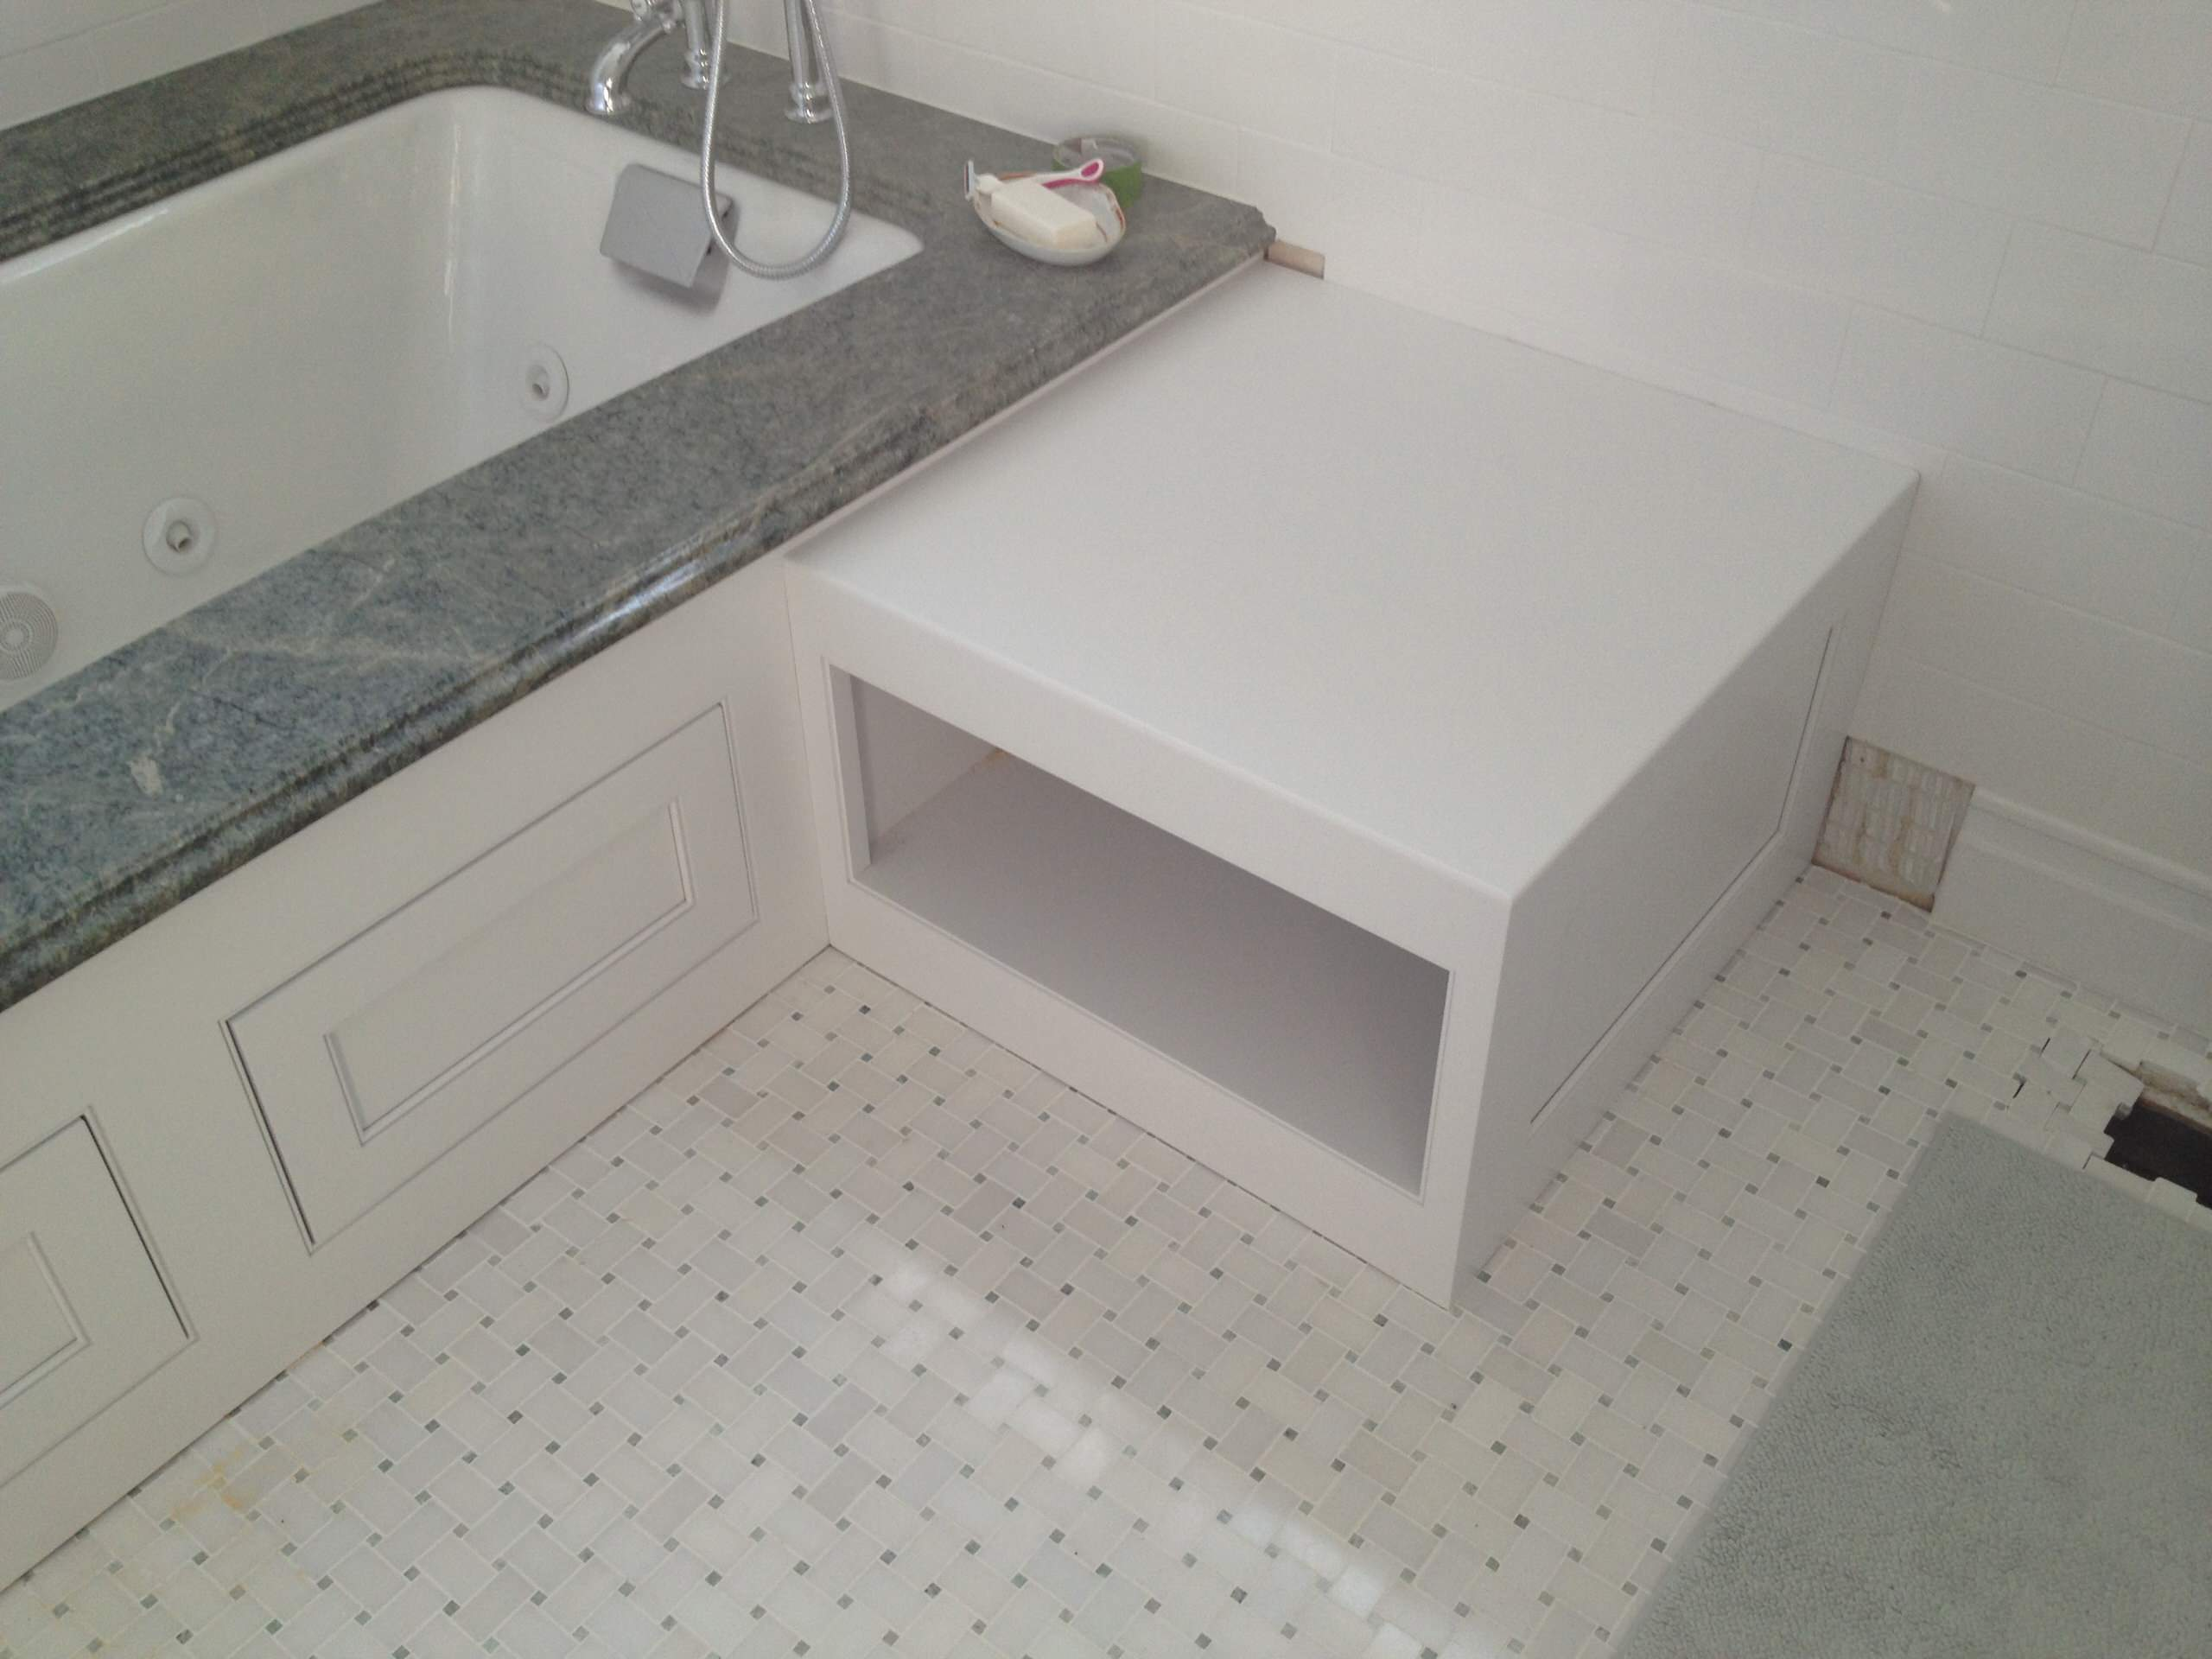 East Brandywine Master Tub Surround